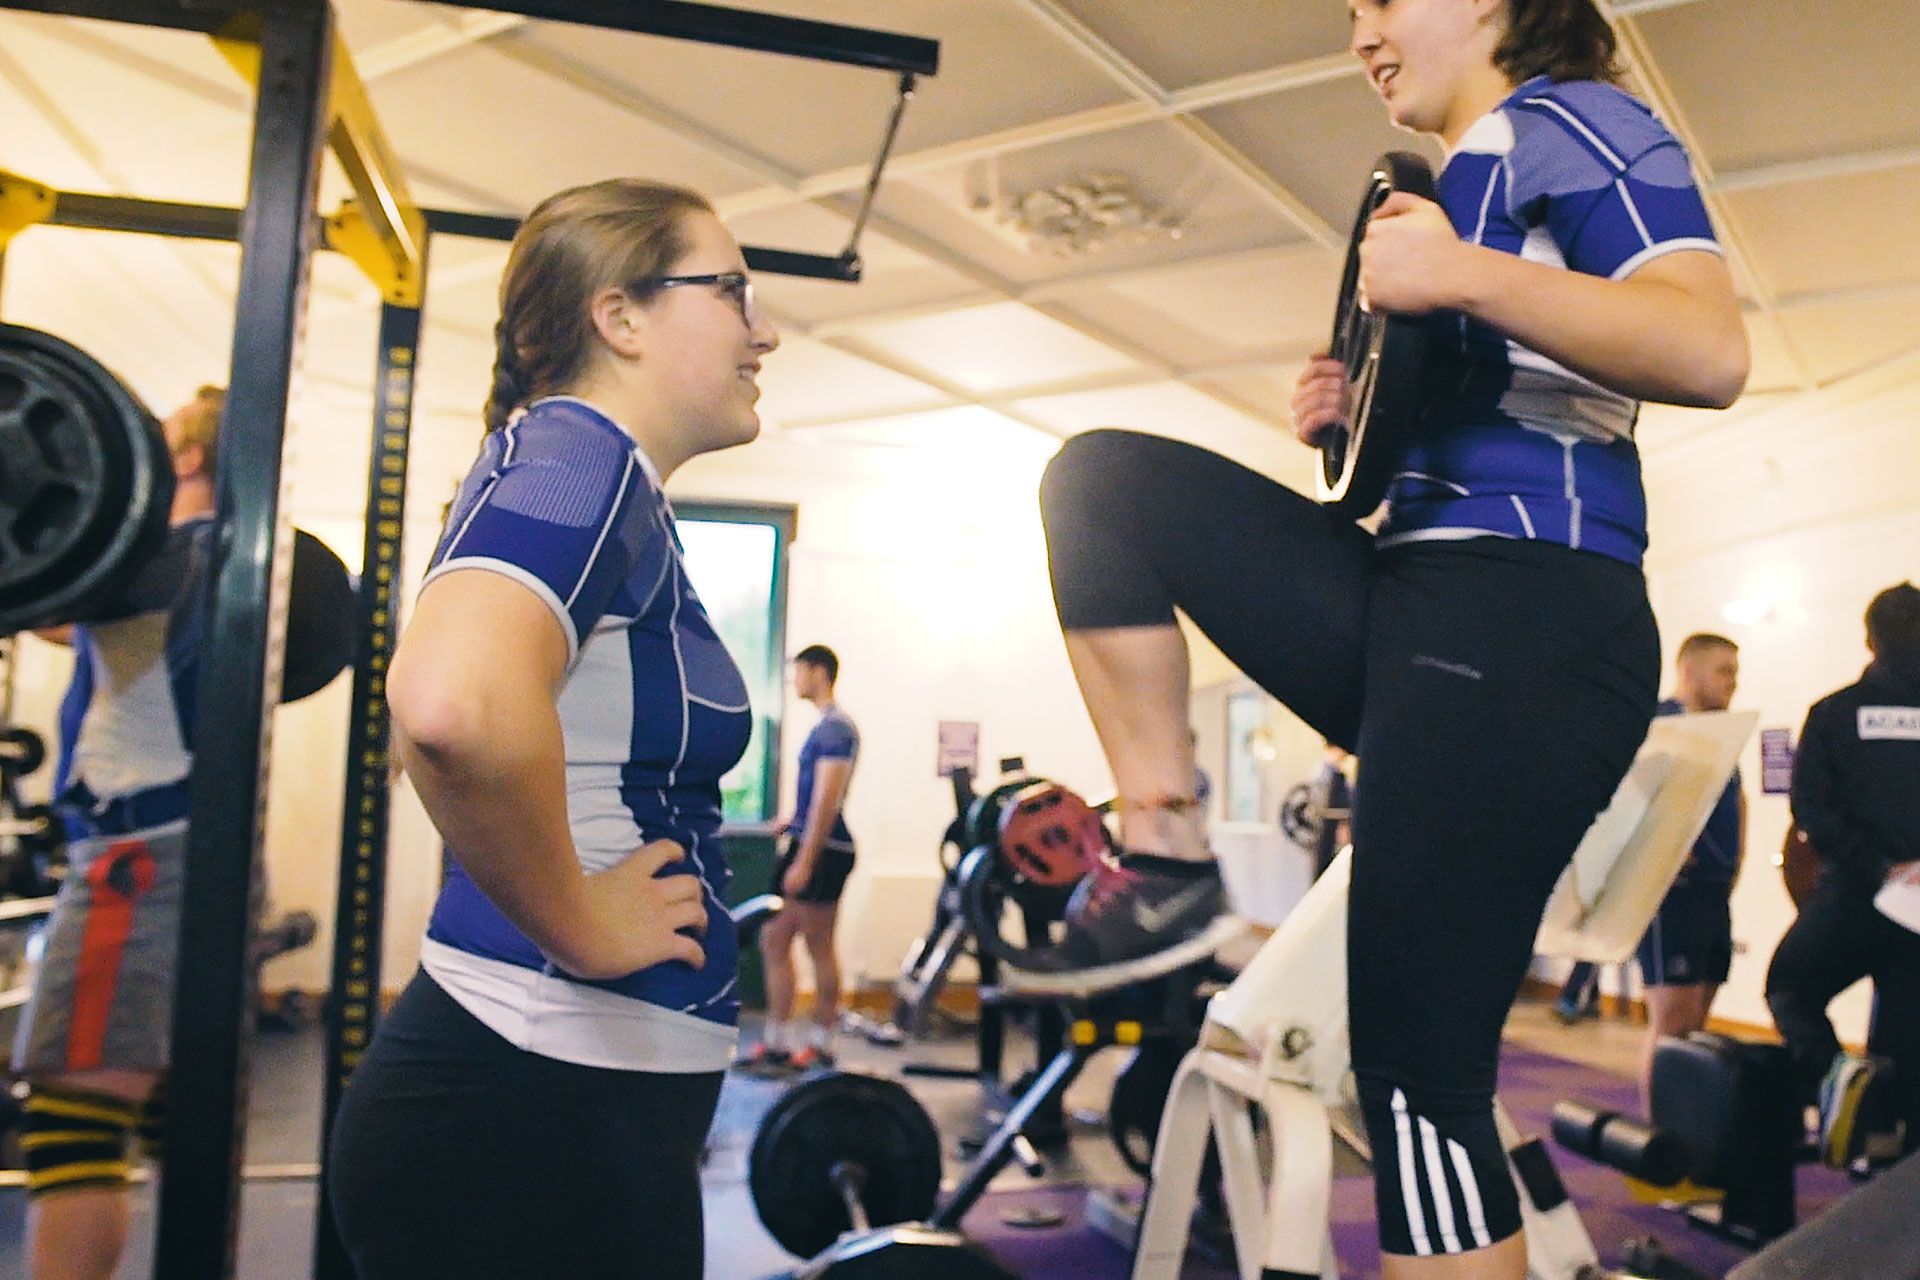 Female Rugby players training at the Rugby Academy Ireland gym